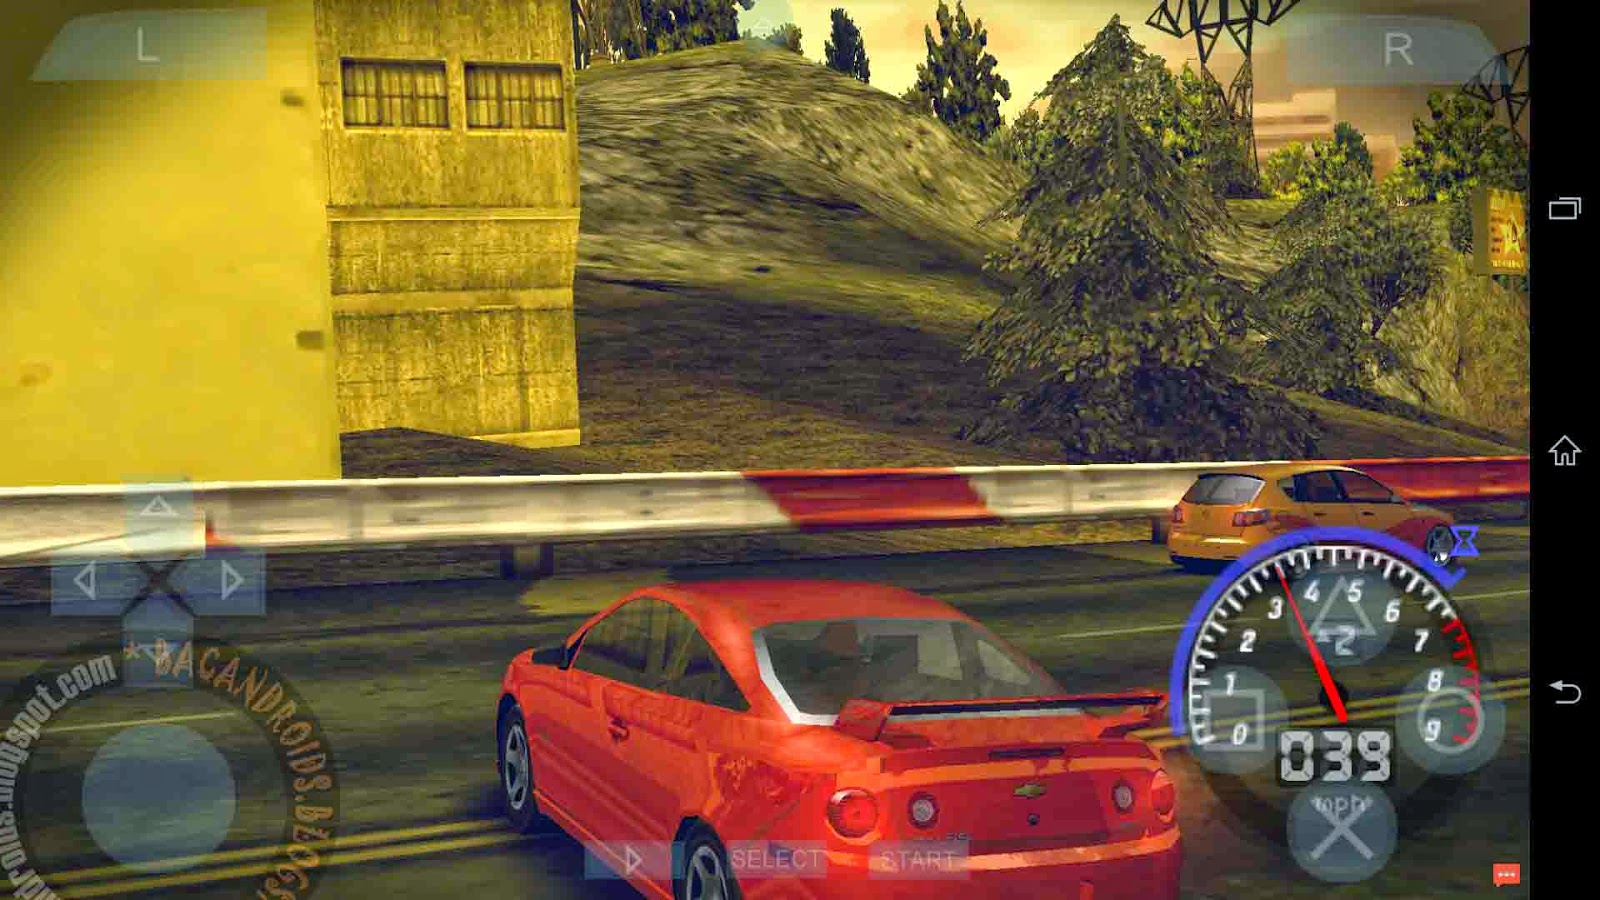 Link Download ROM game PSP iso Android NFS